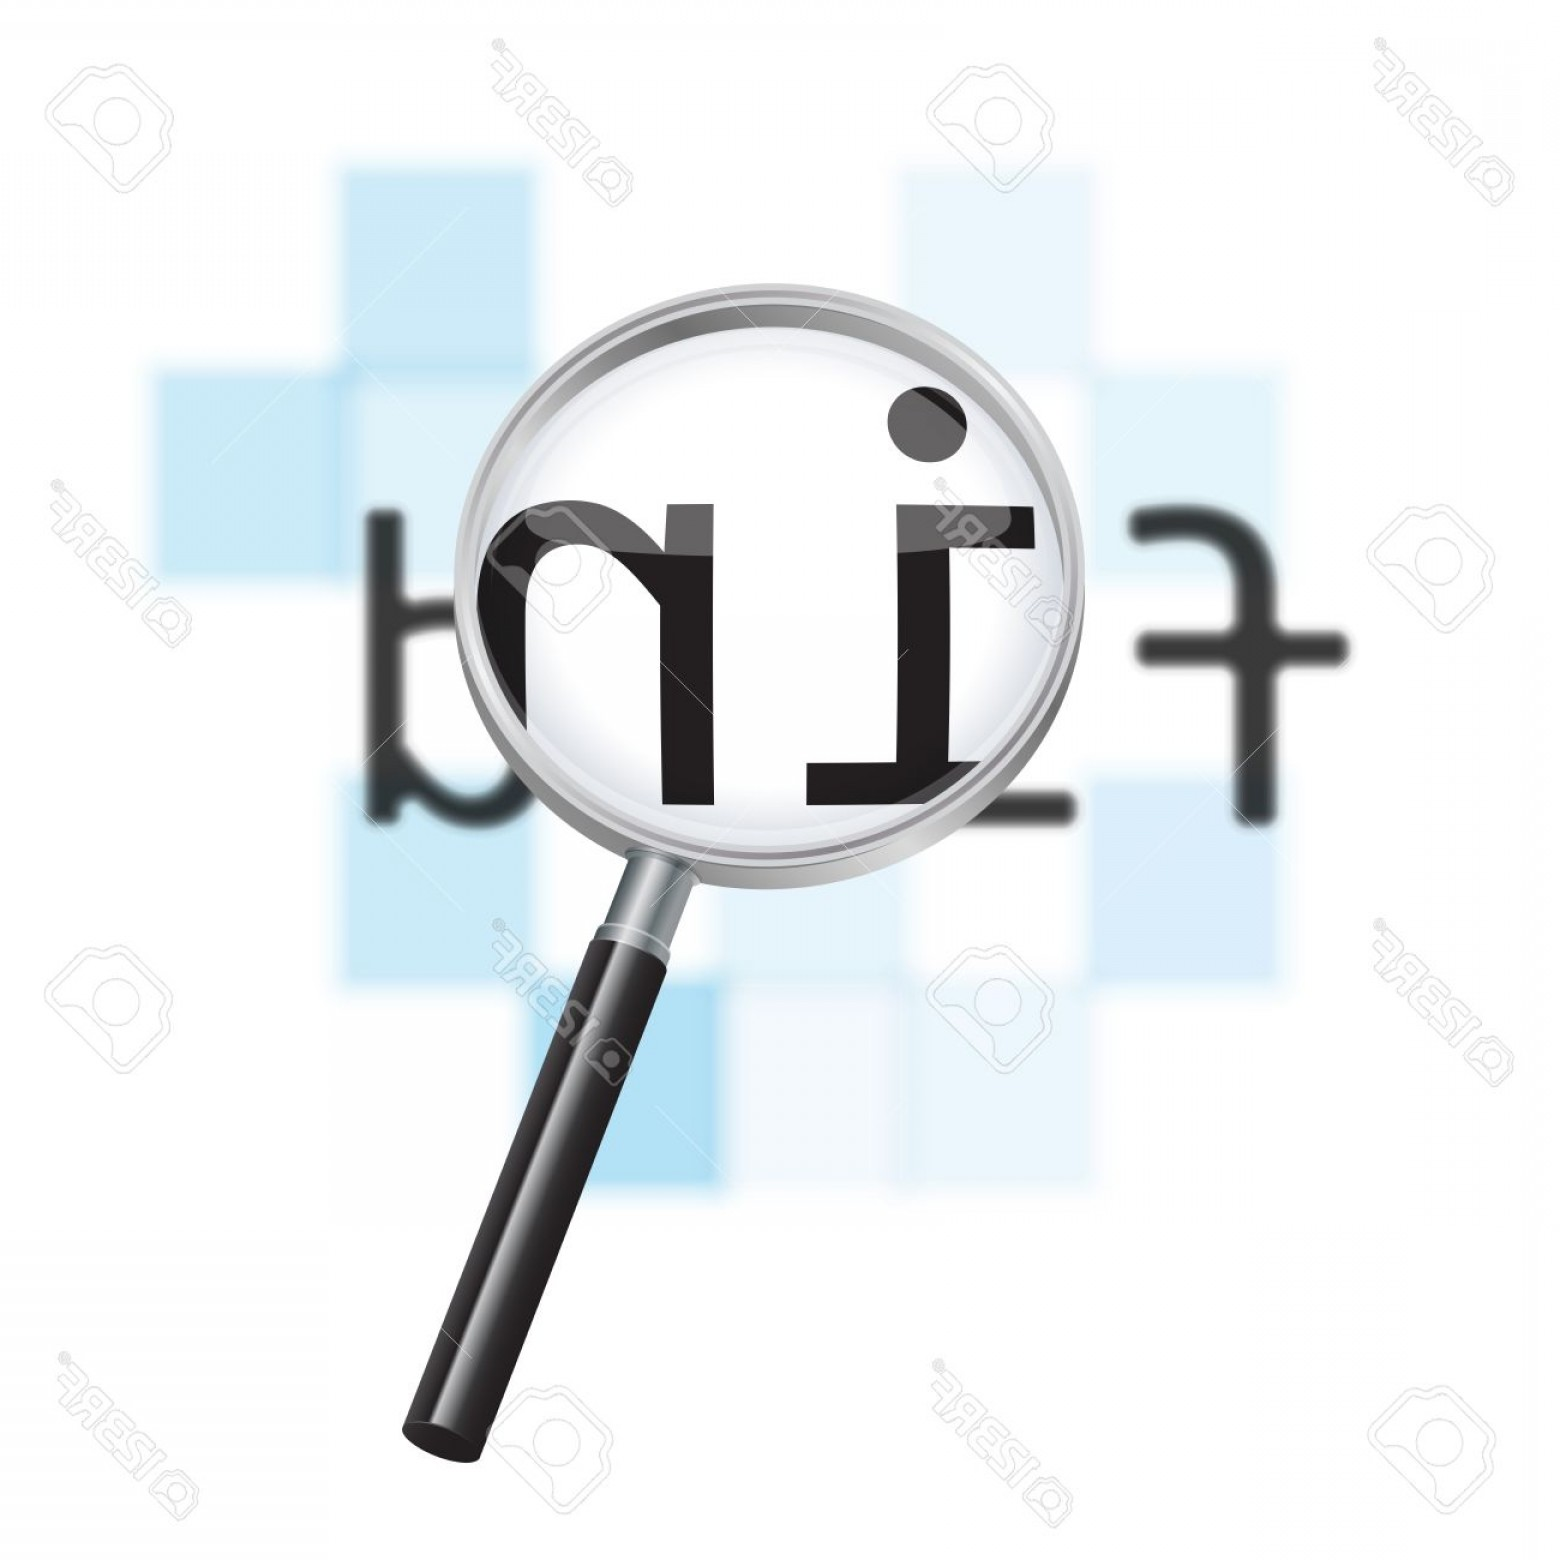 Find Vectors: Photovector Internet Search Conceptual Image Magnifying Glass Focusing On The Word Find Against A Defocus